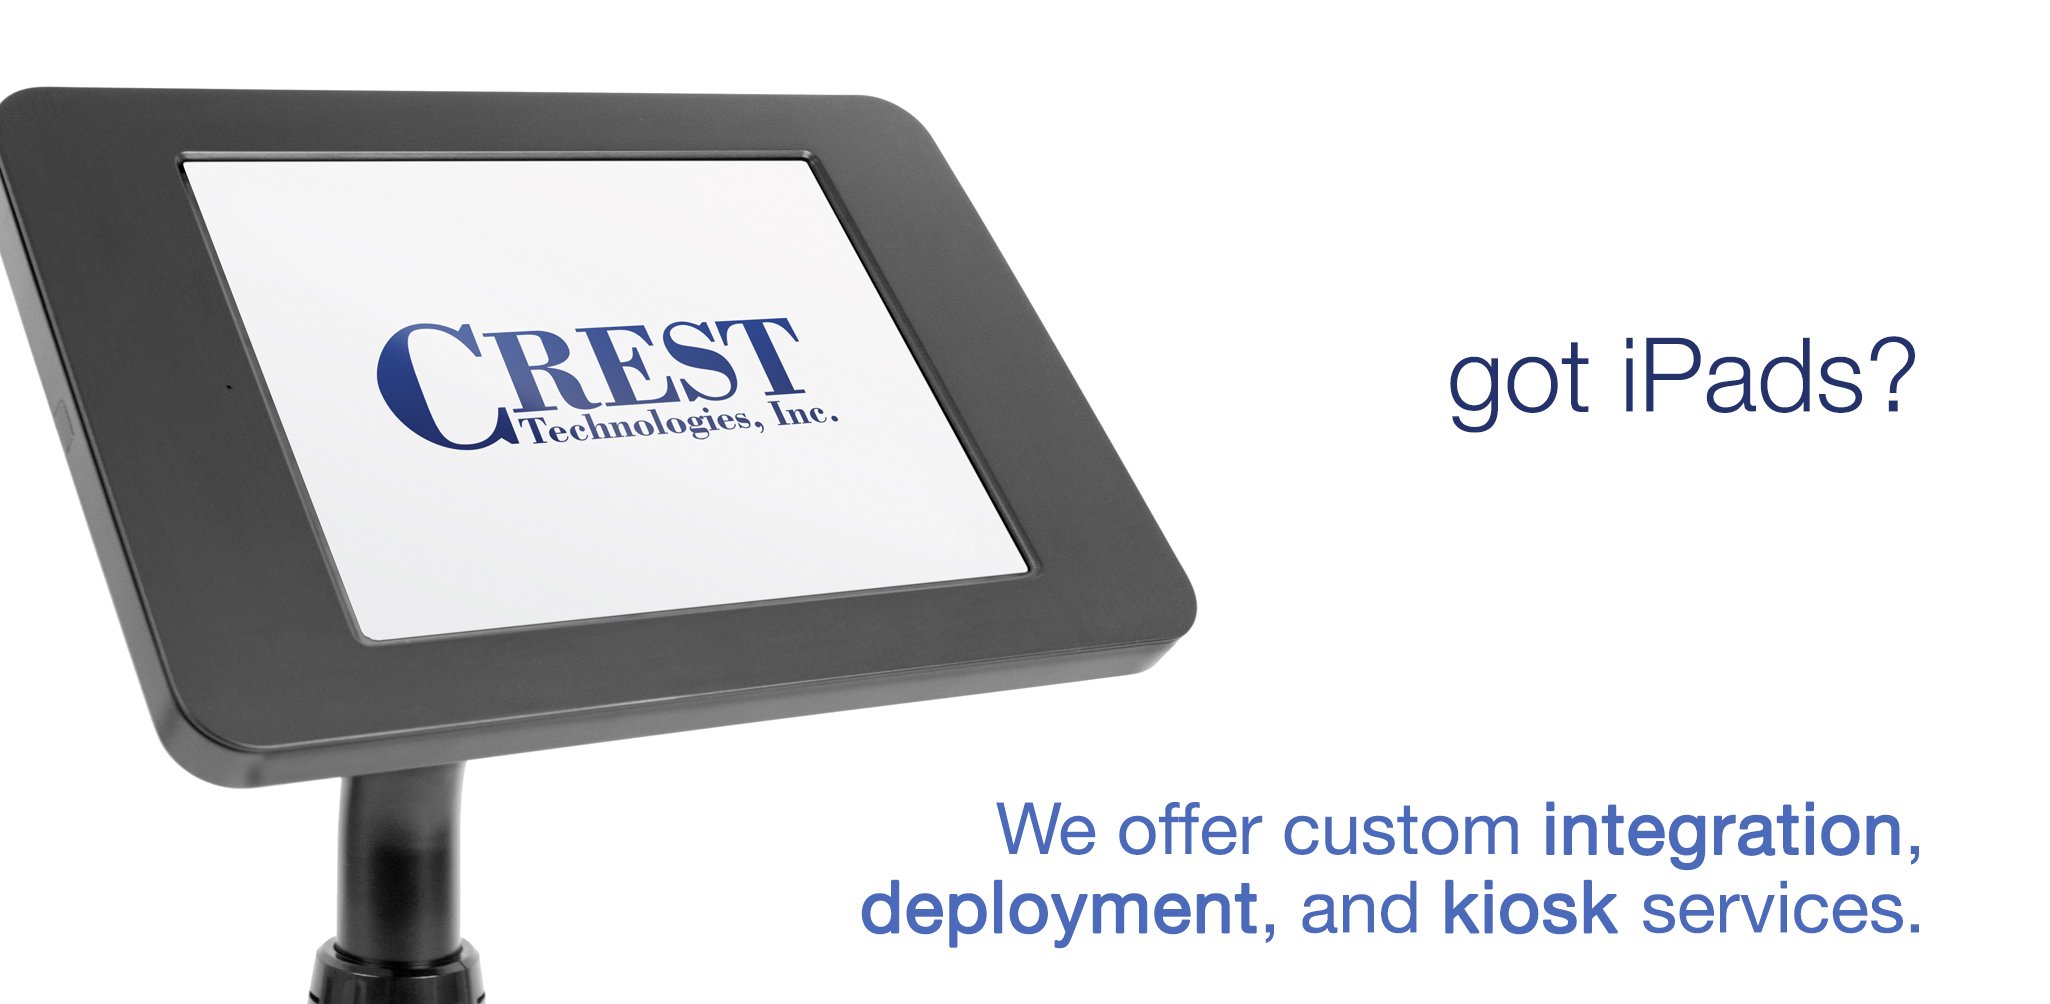 We offer custom integration, deployment, and kiosk services.